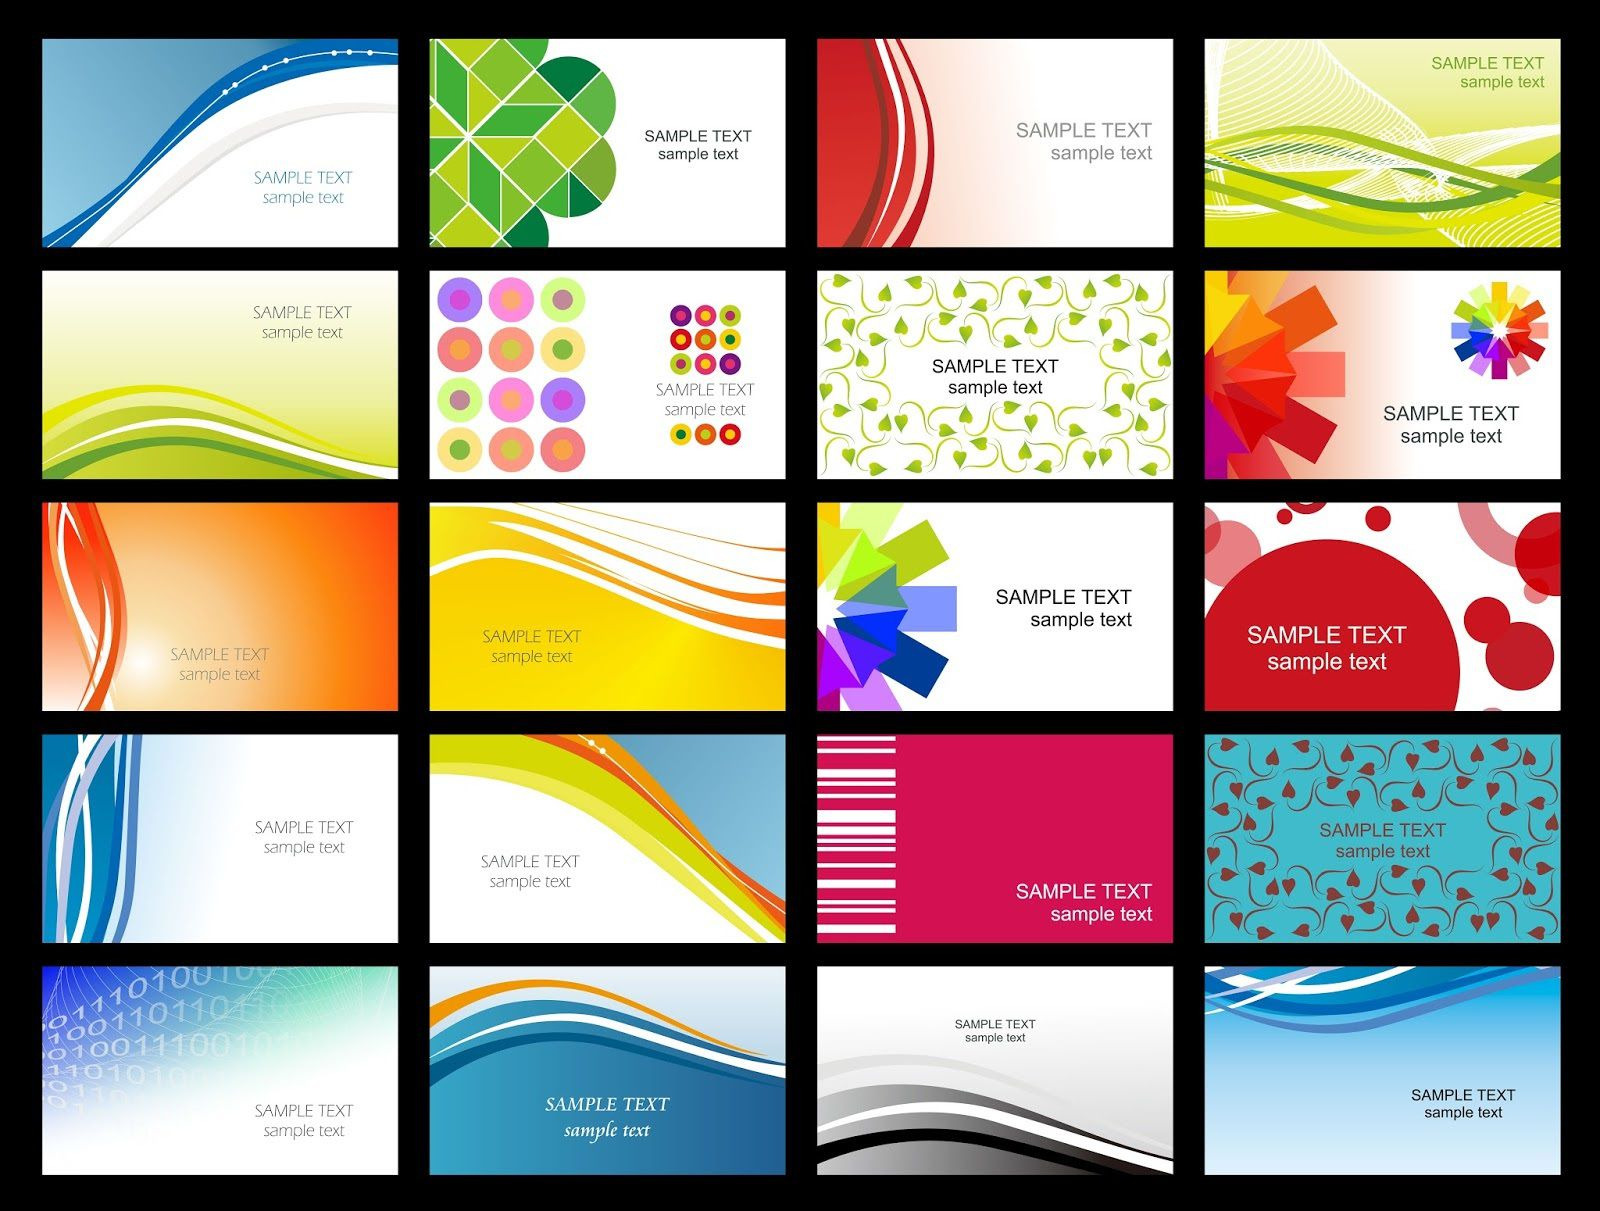 008 Stunning Busines Card Template Free Download Sample  Psd File Pdf PptFull